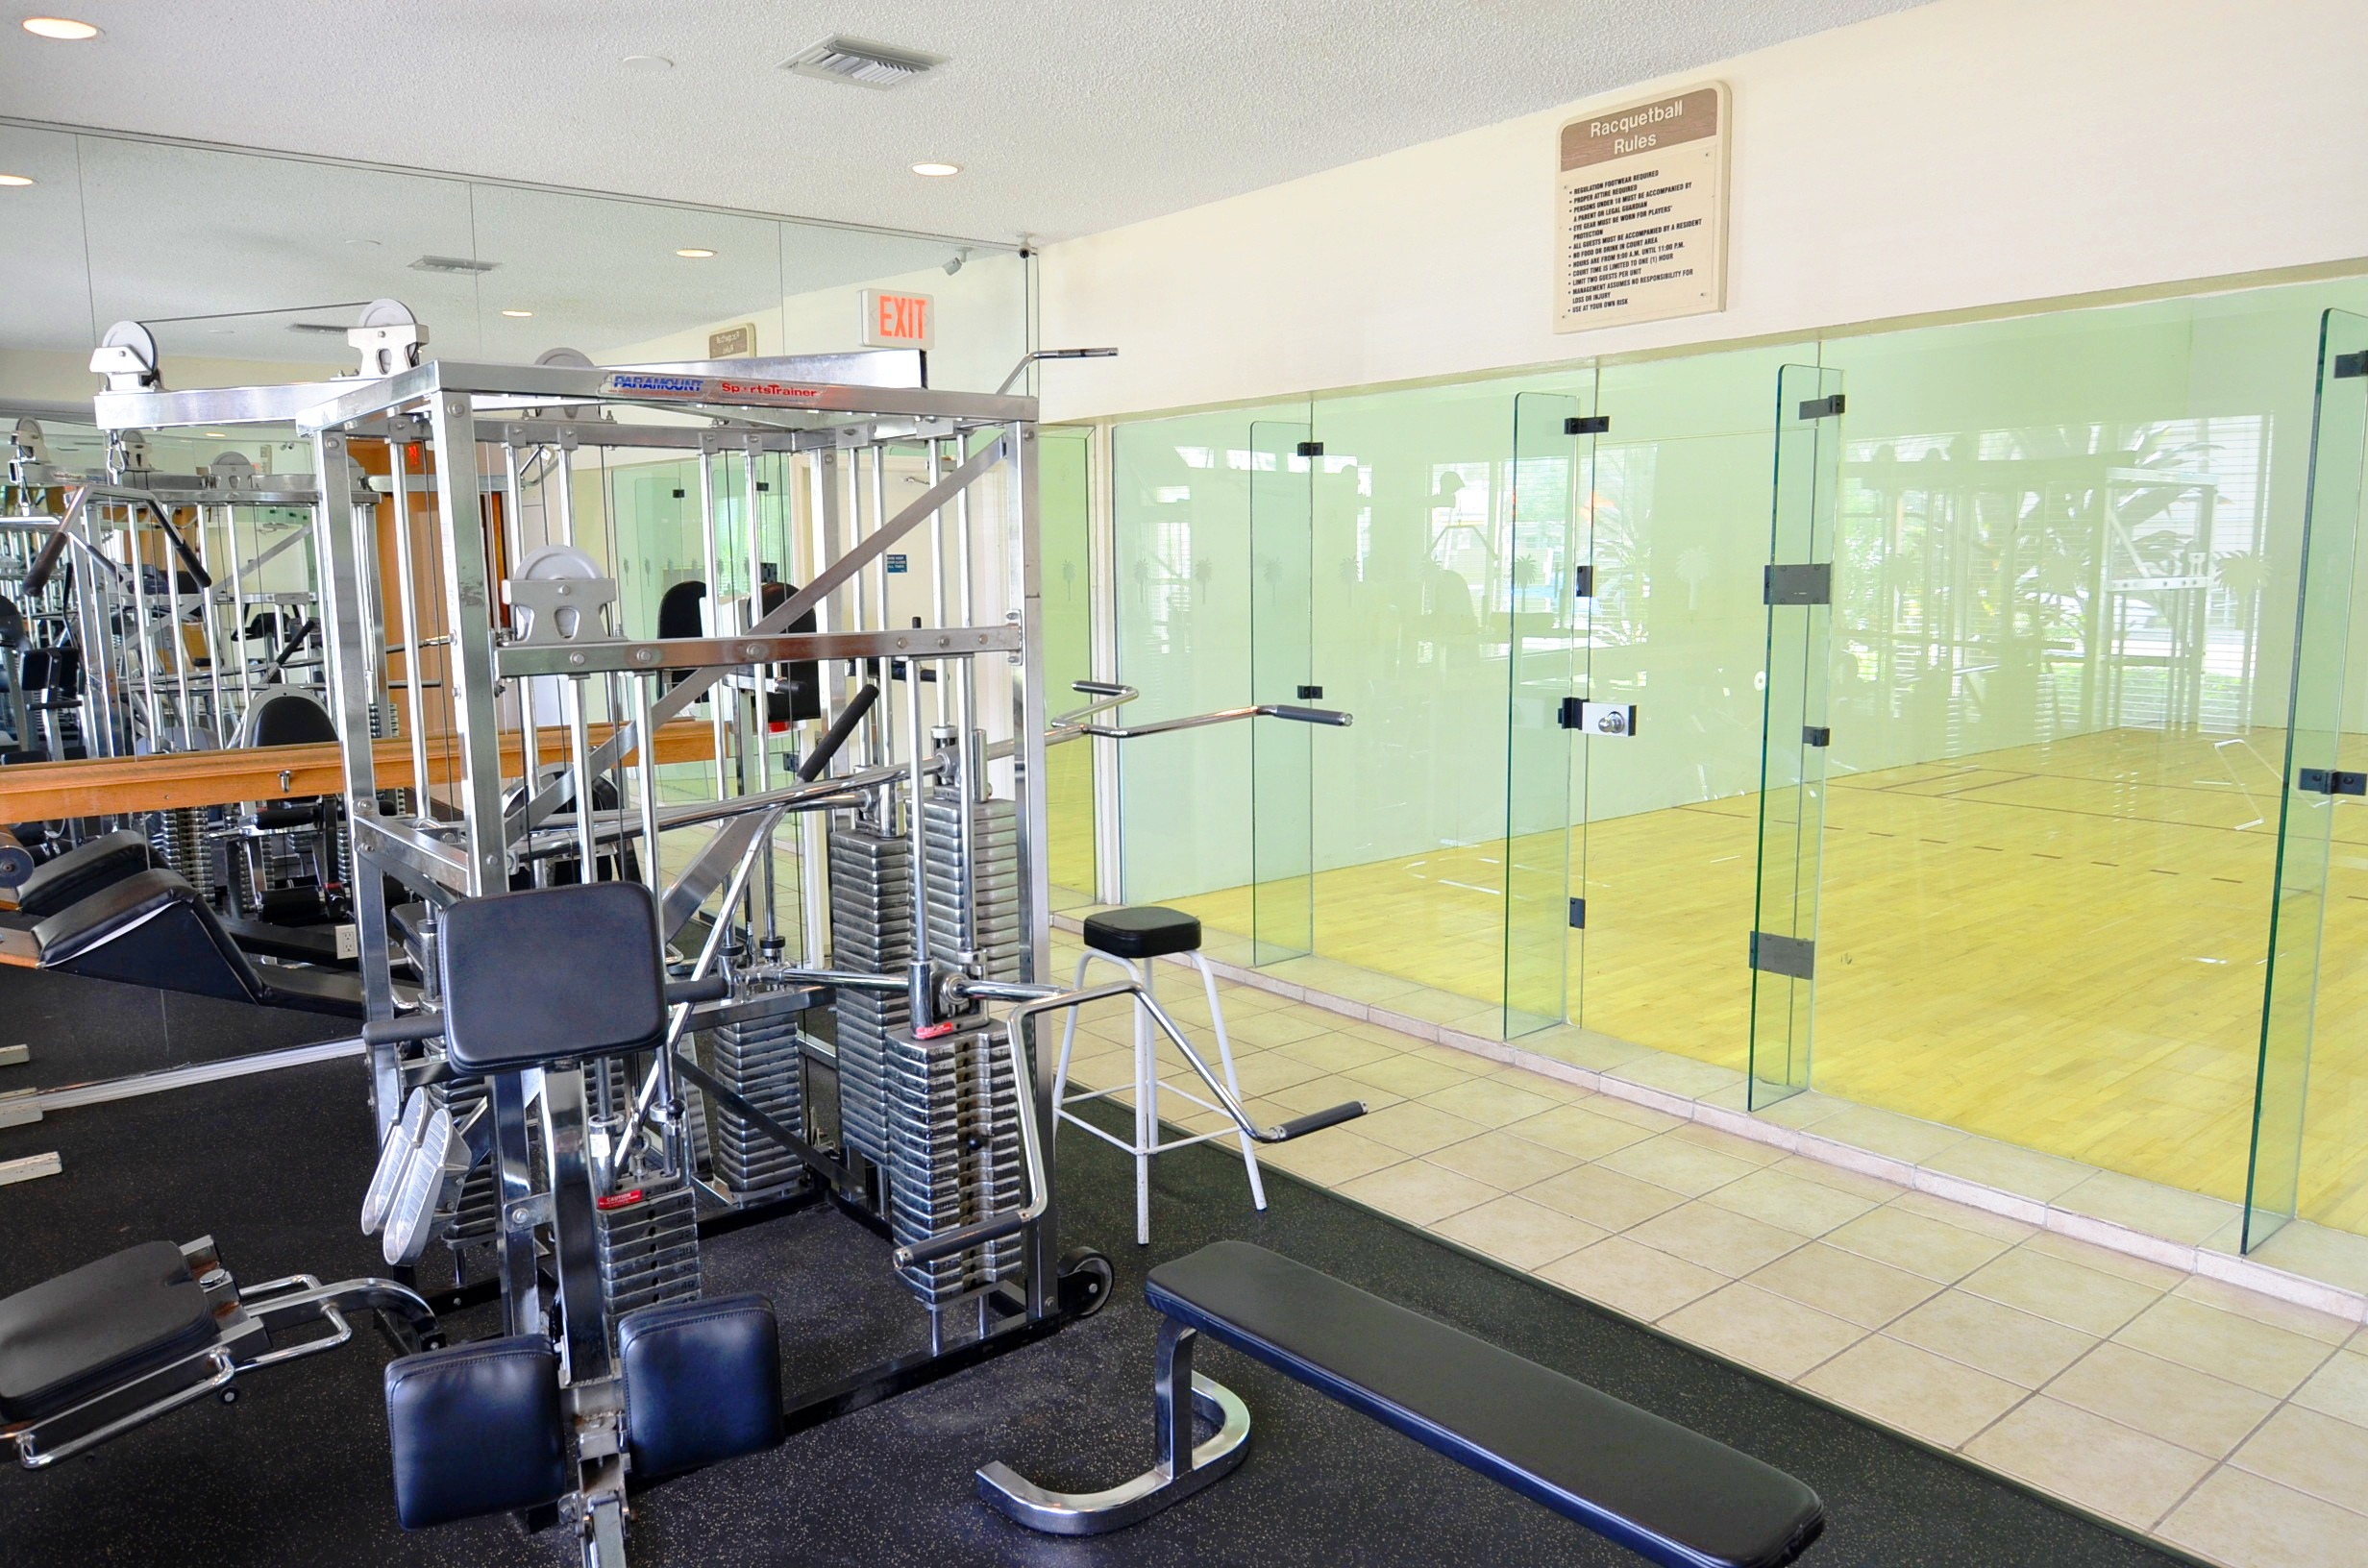 More exercise equipment's and a Racquetball area at Waterford Point Apartments in Miami, Florida